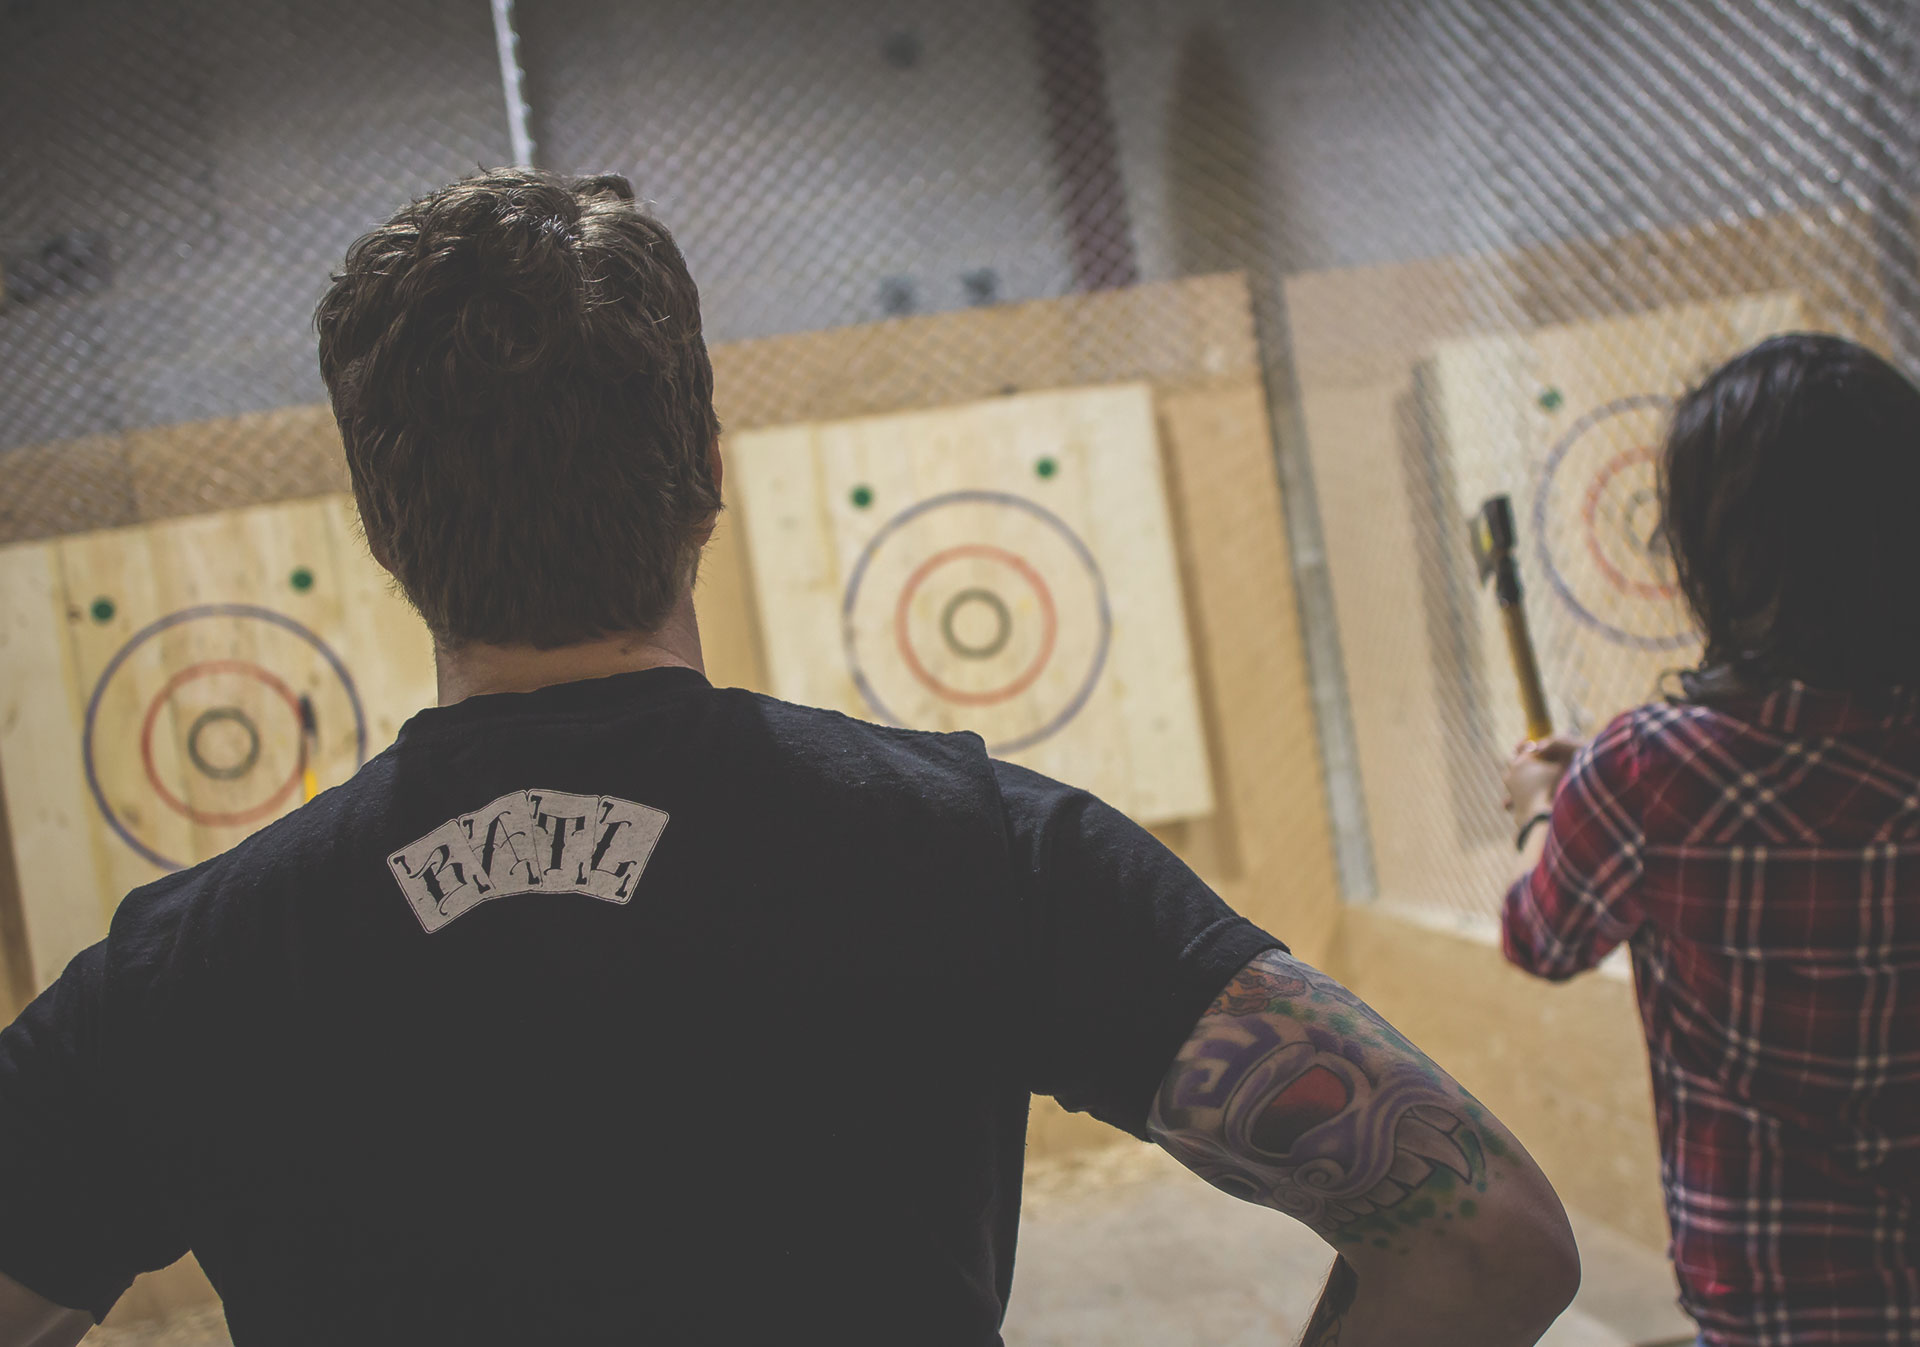 Axe thrower at BATL: Axe Throwing